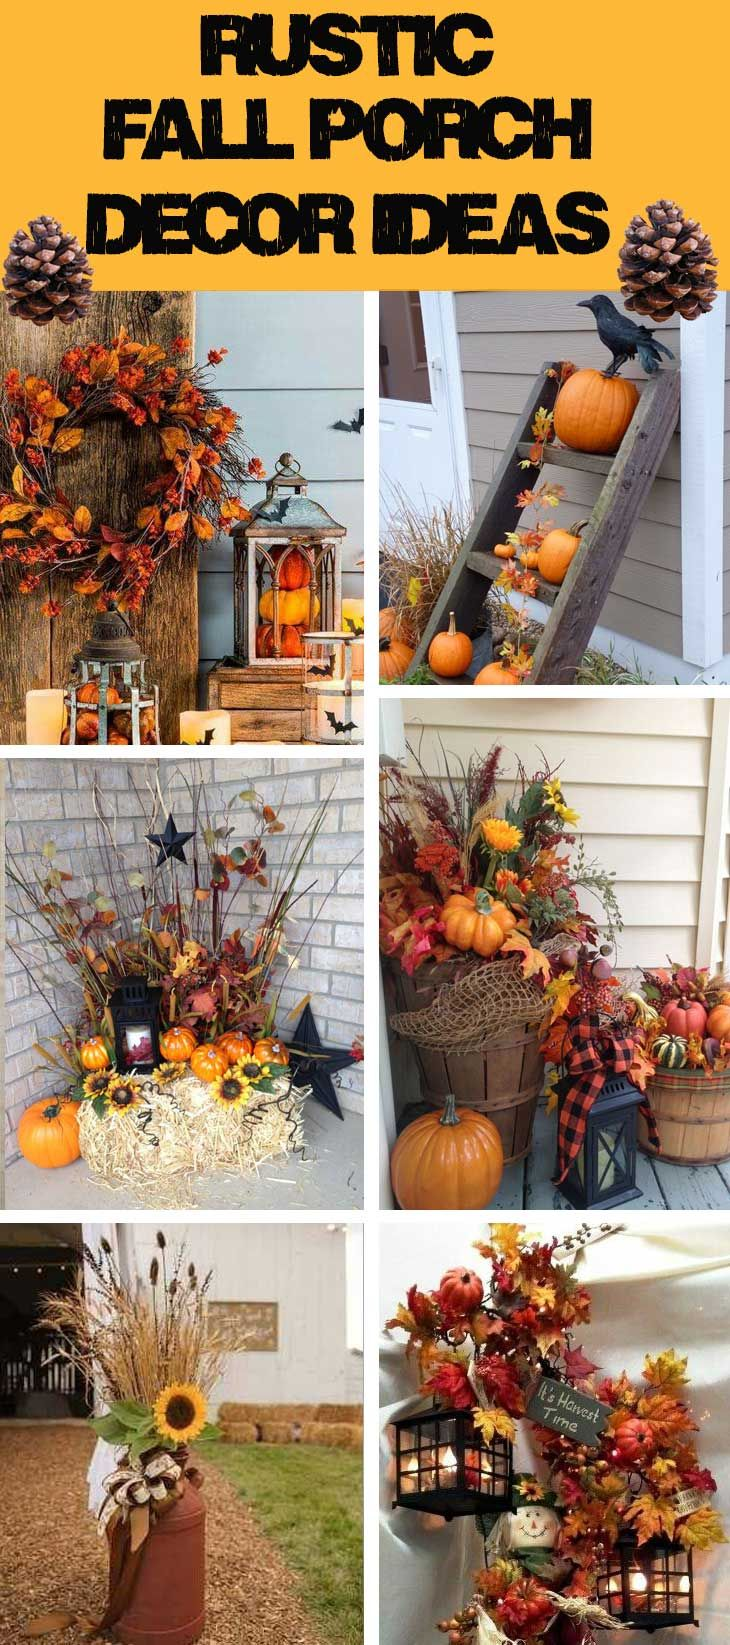 Fall Into The Most Beautiful Season Of The Year With These Fall Decor Ideas Let Your Home Ref Fall Decorations Porch Fall Thanksgiving Decor Rustic Fall Porch